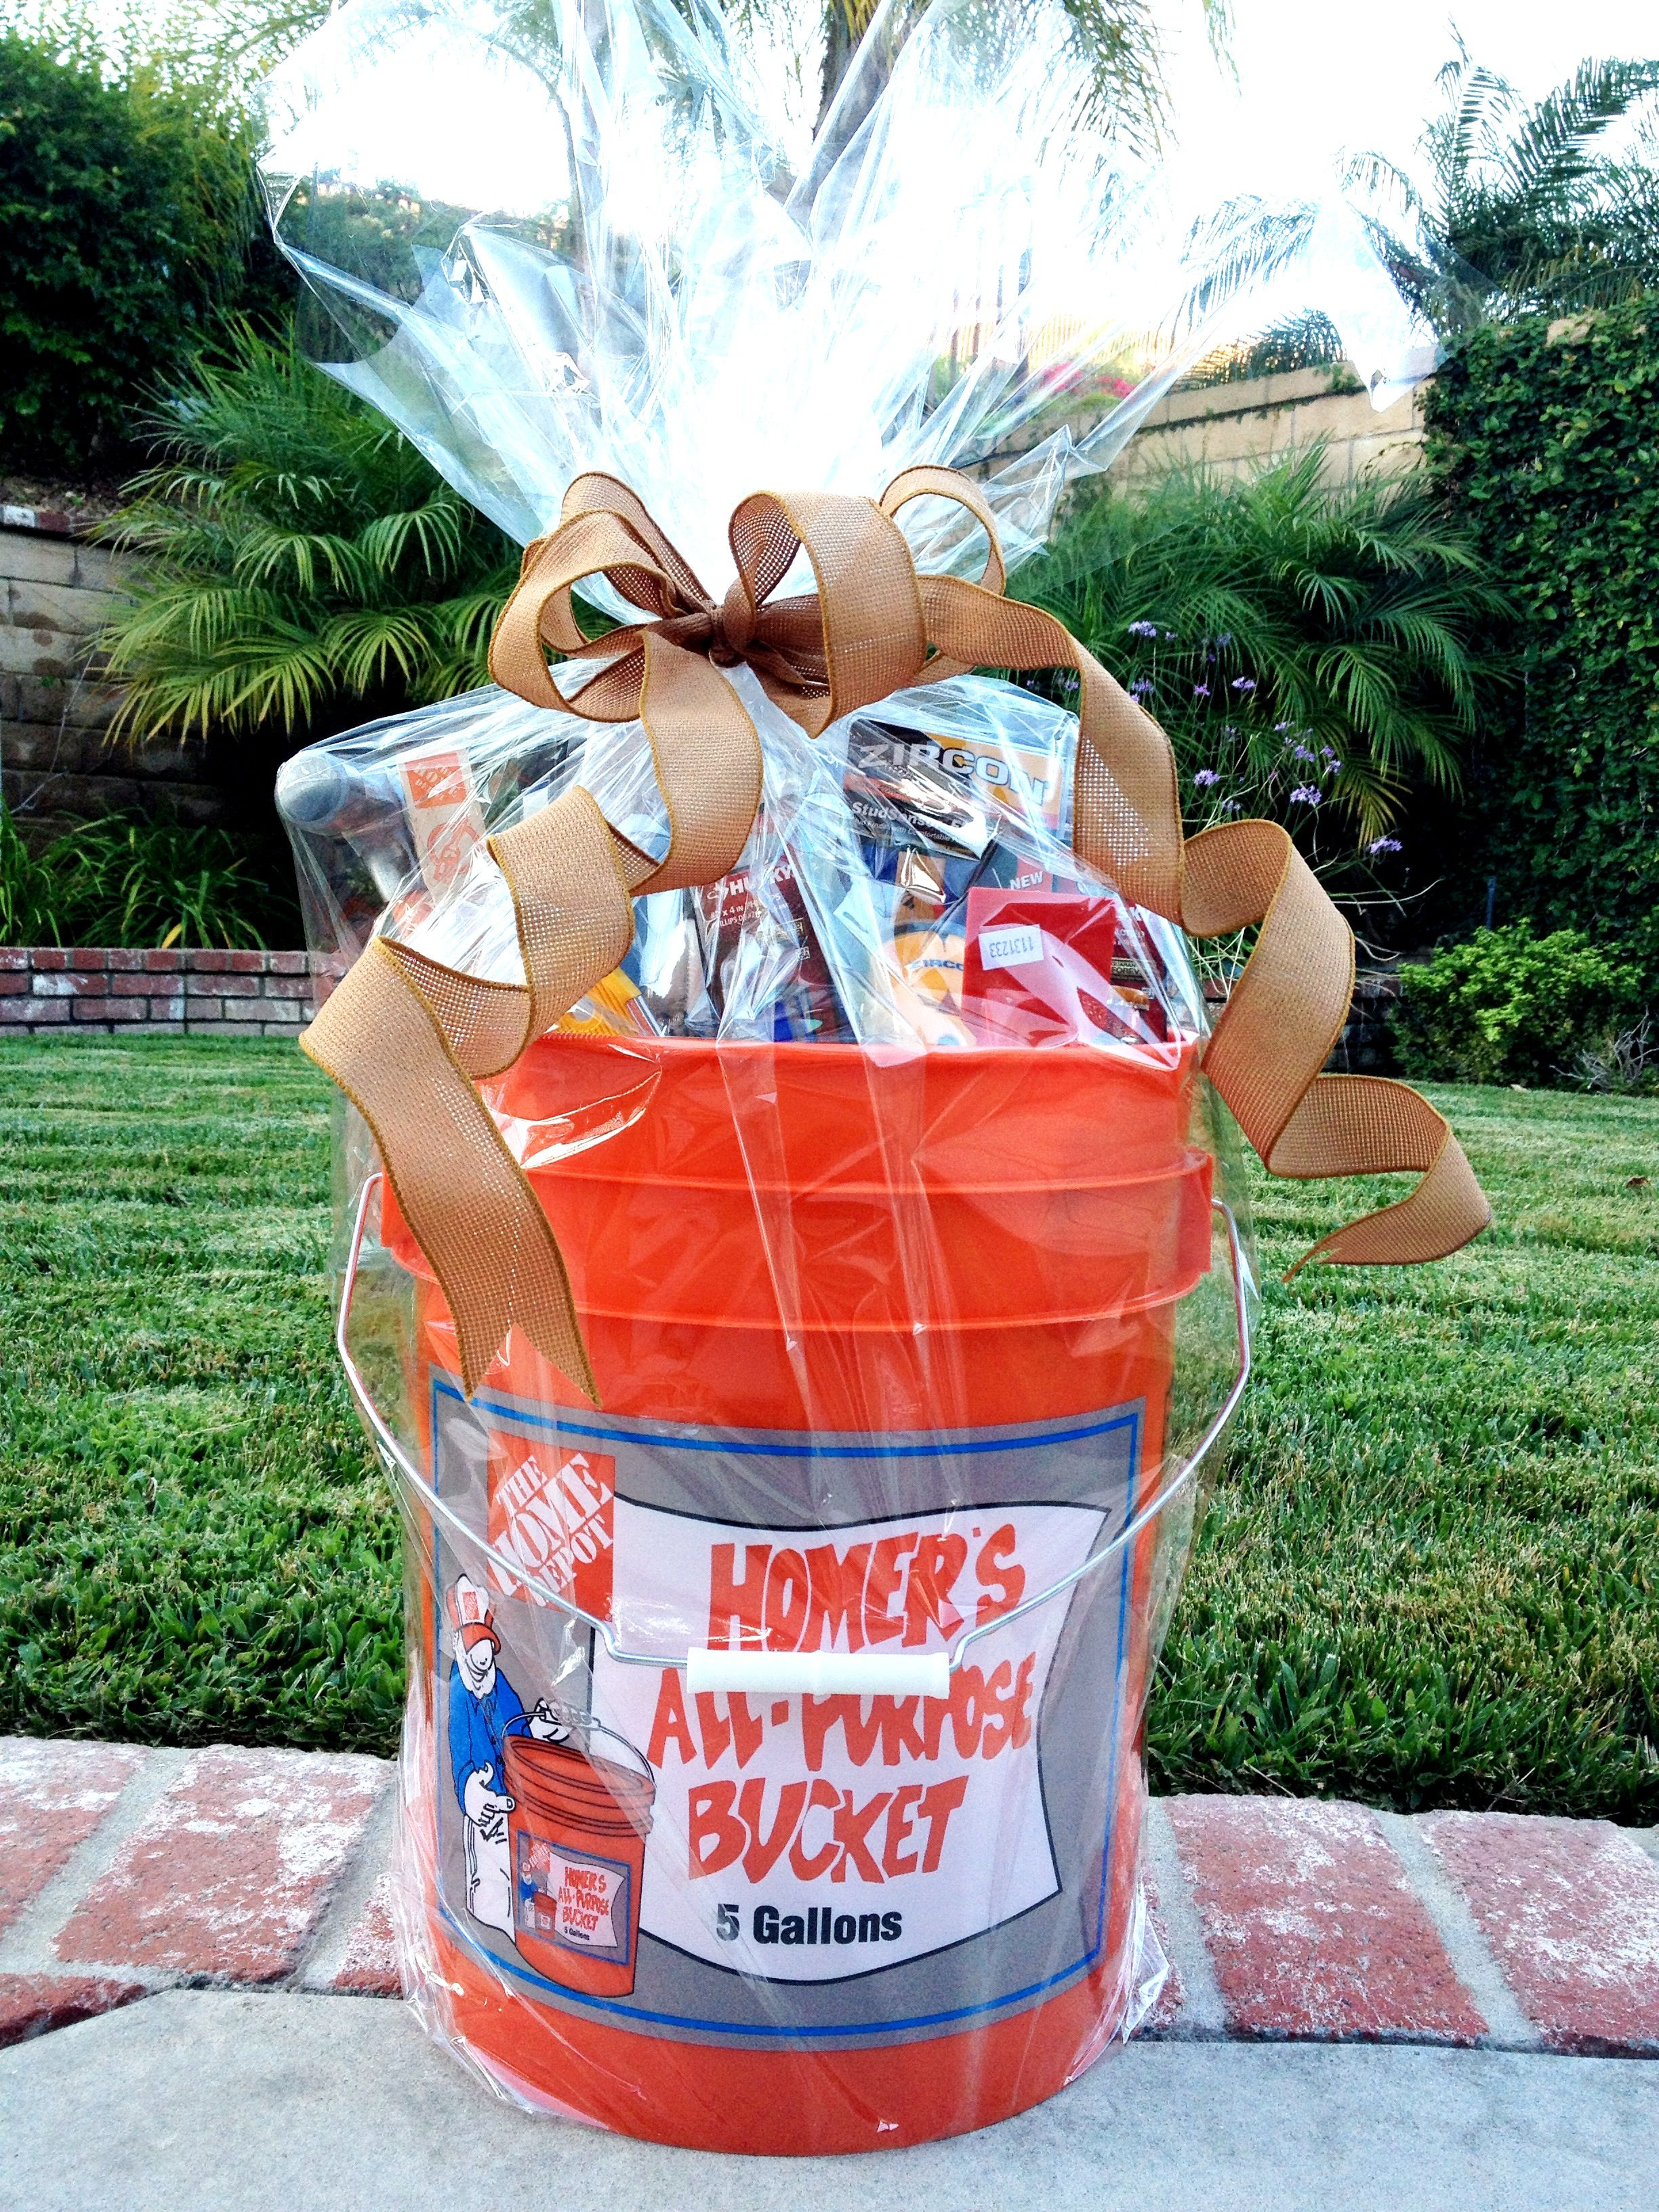 5 Gallon Bucket Home Depot House Warming Gift Home Depot 5 Gallon Bucket